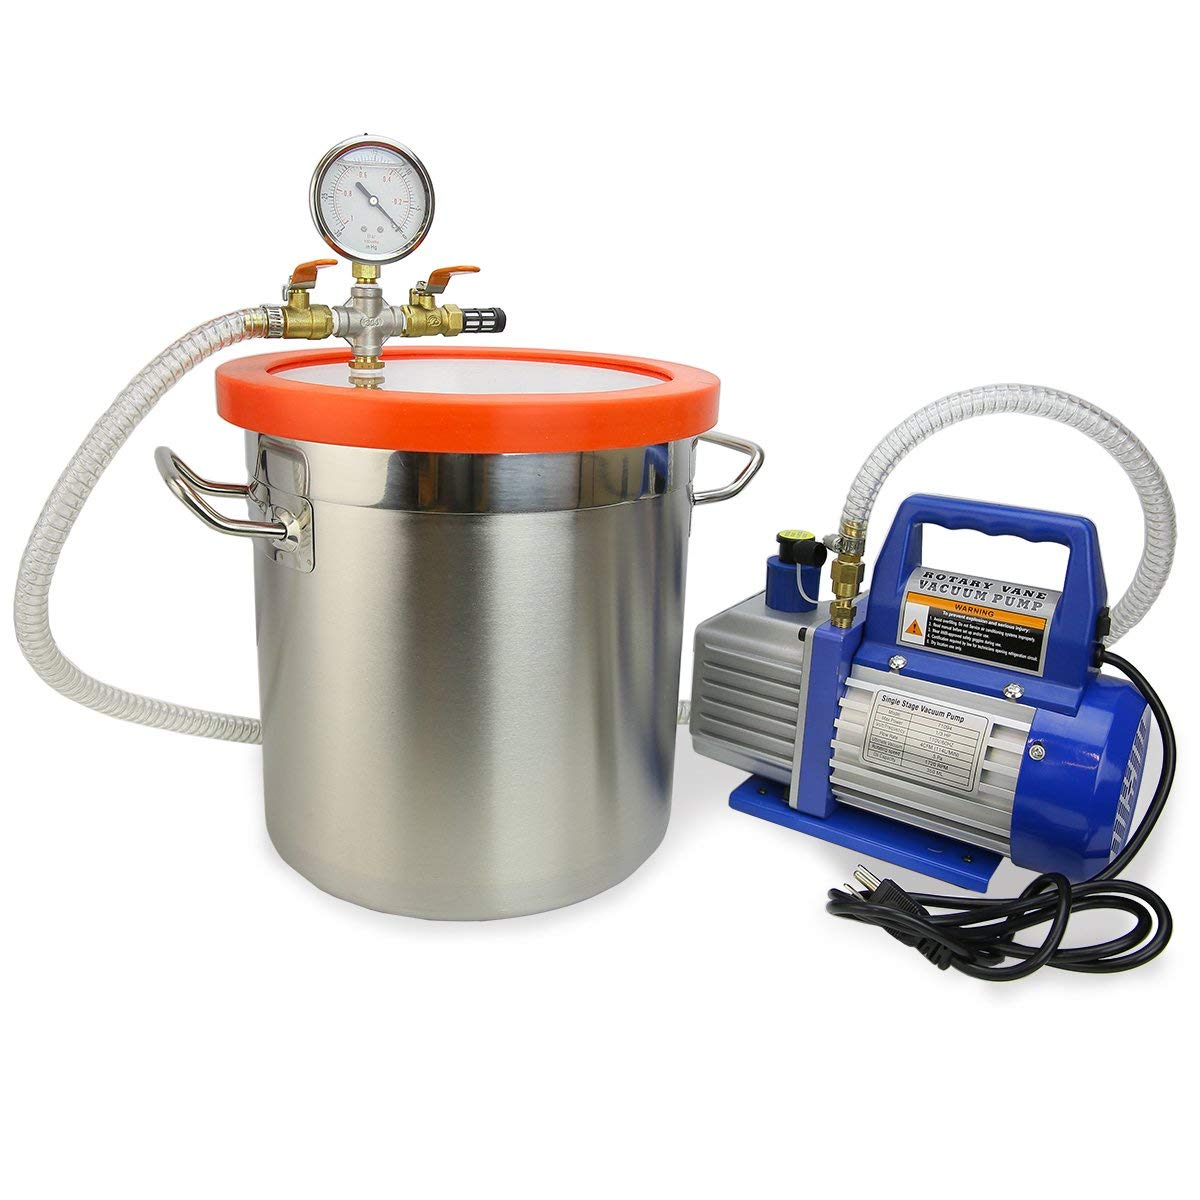 XtremepowerUS 5 CFM Two-Stage Vacuum Pump 2 Gallons Chamber Kit Degass Urethanes, Silicones and Epoxies